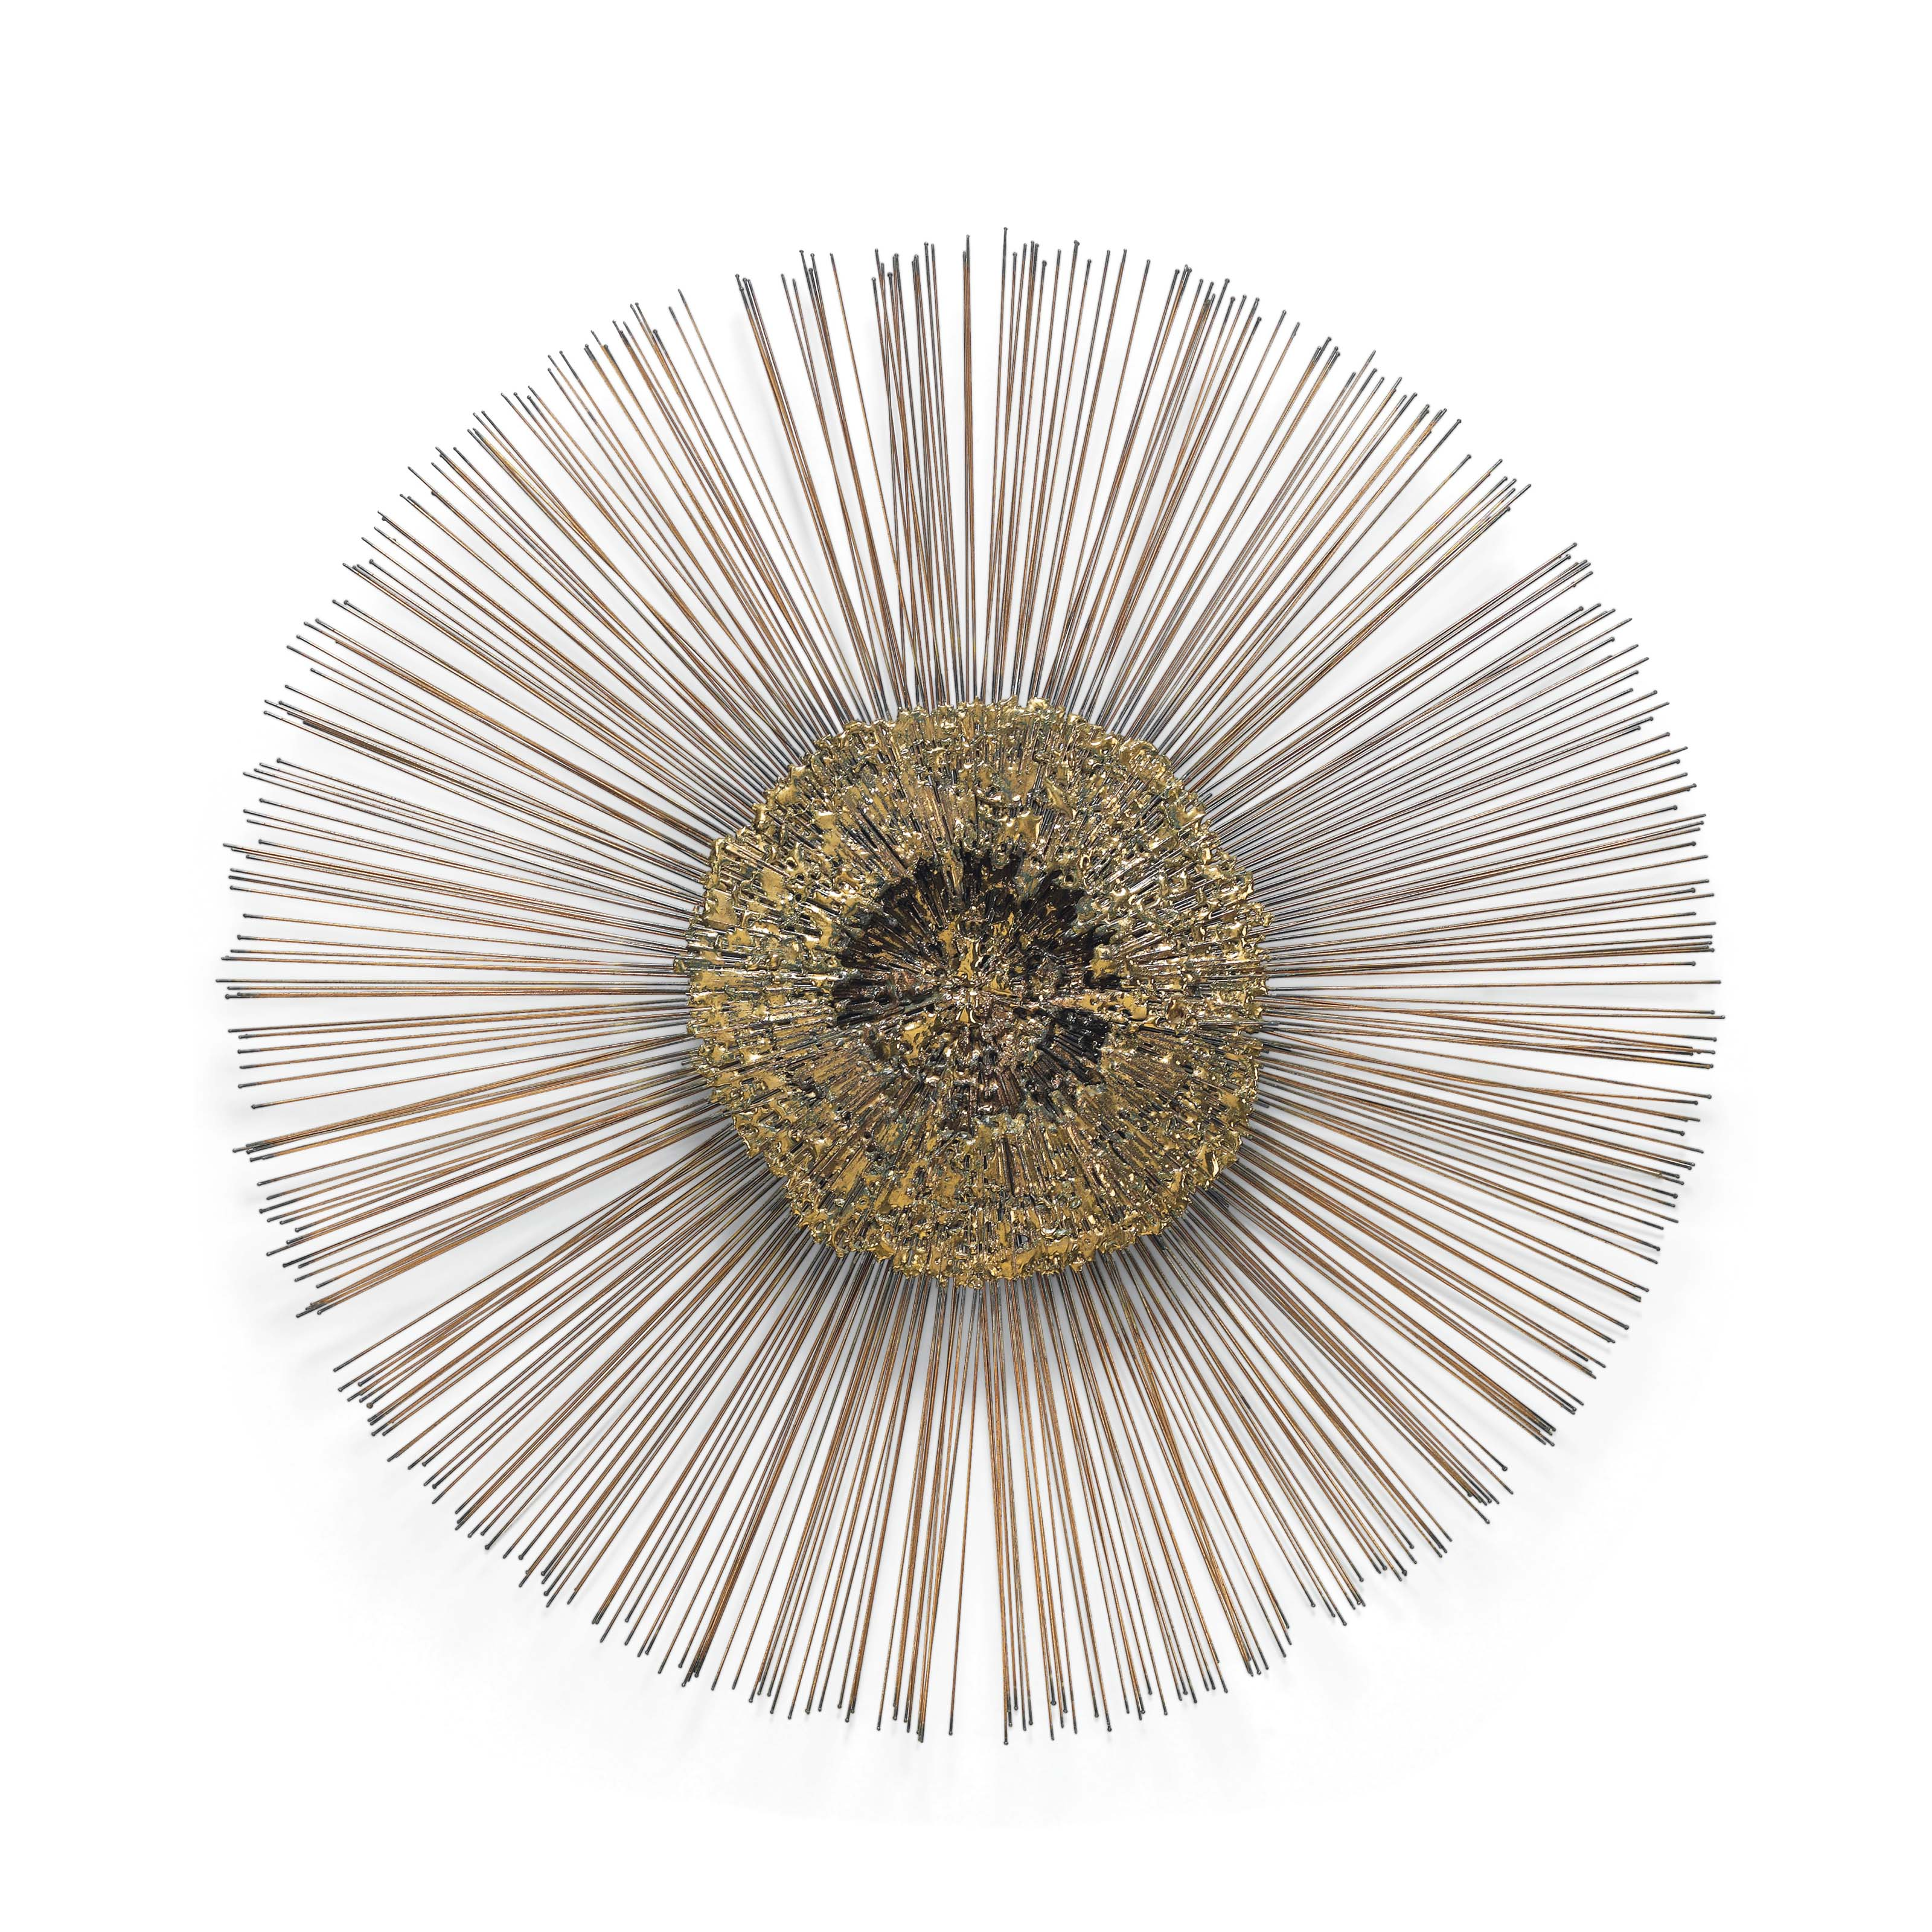 A COPPER AND BRASS PATINATED STEEL SUNBURST WALL SCULPTURE